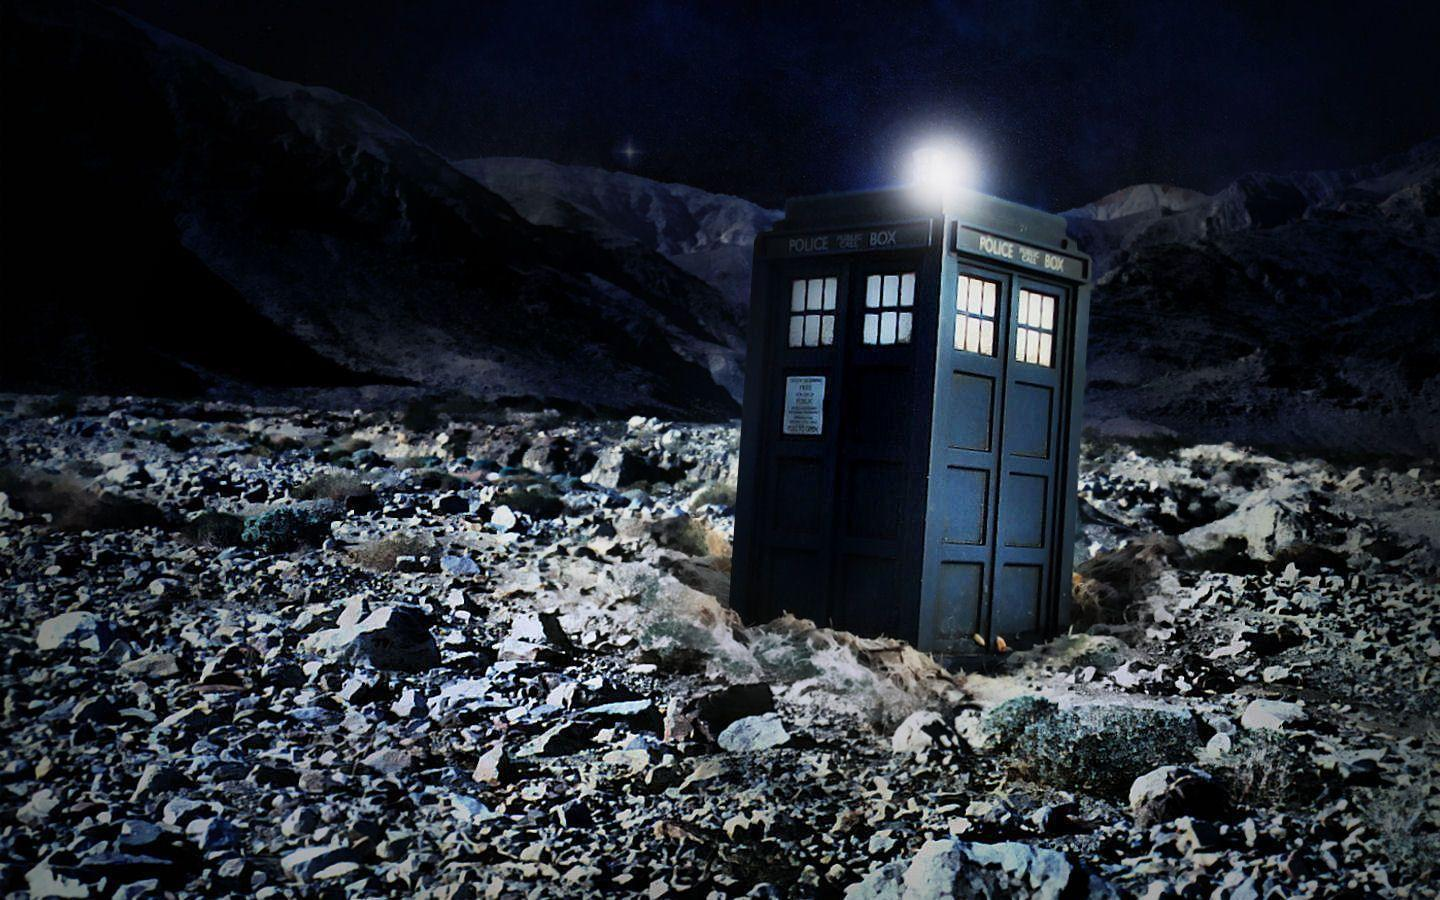 tardis images hd wallpaper -#main